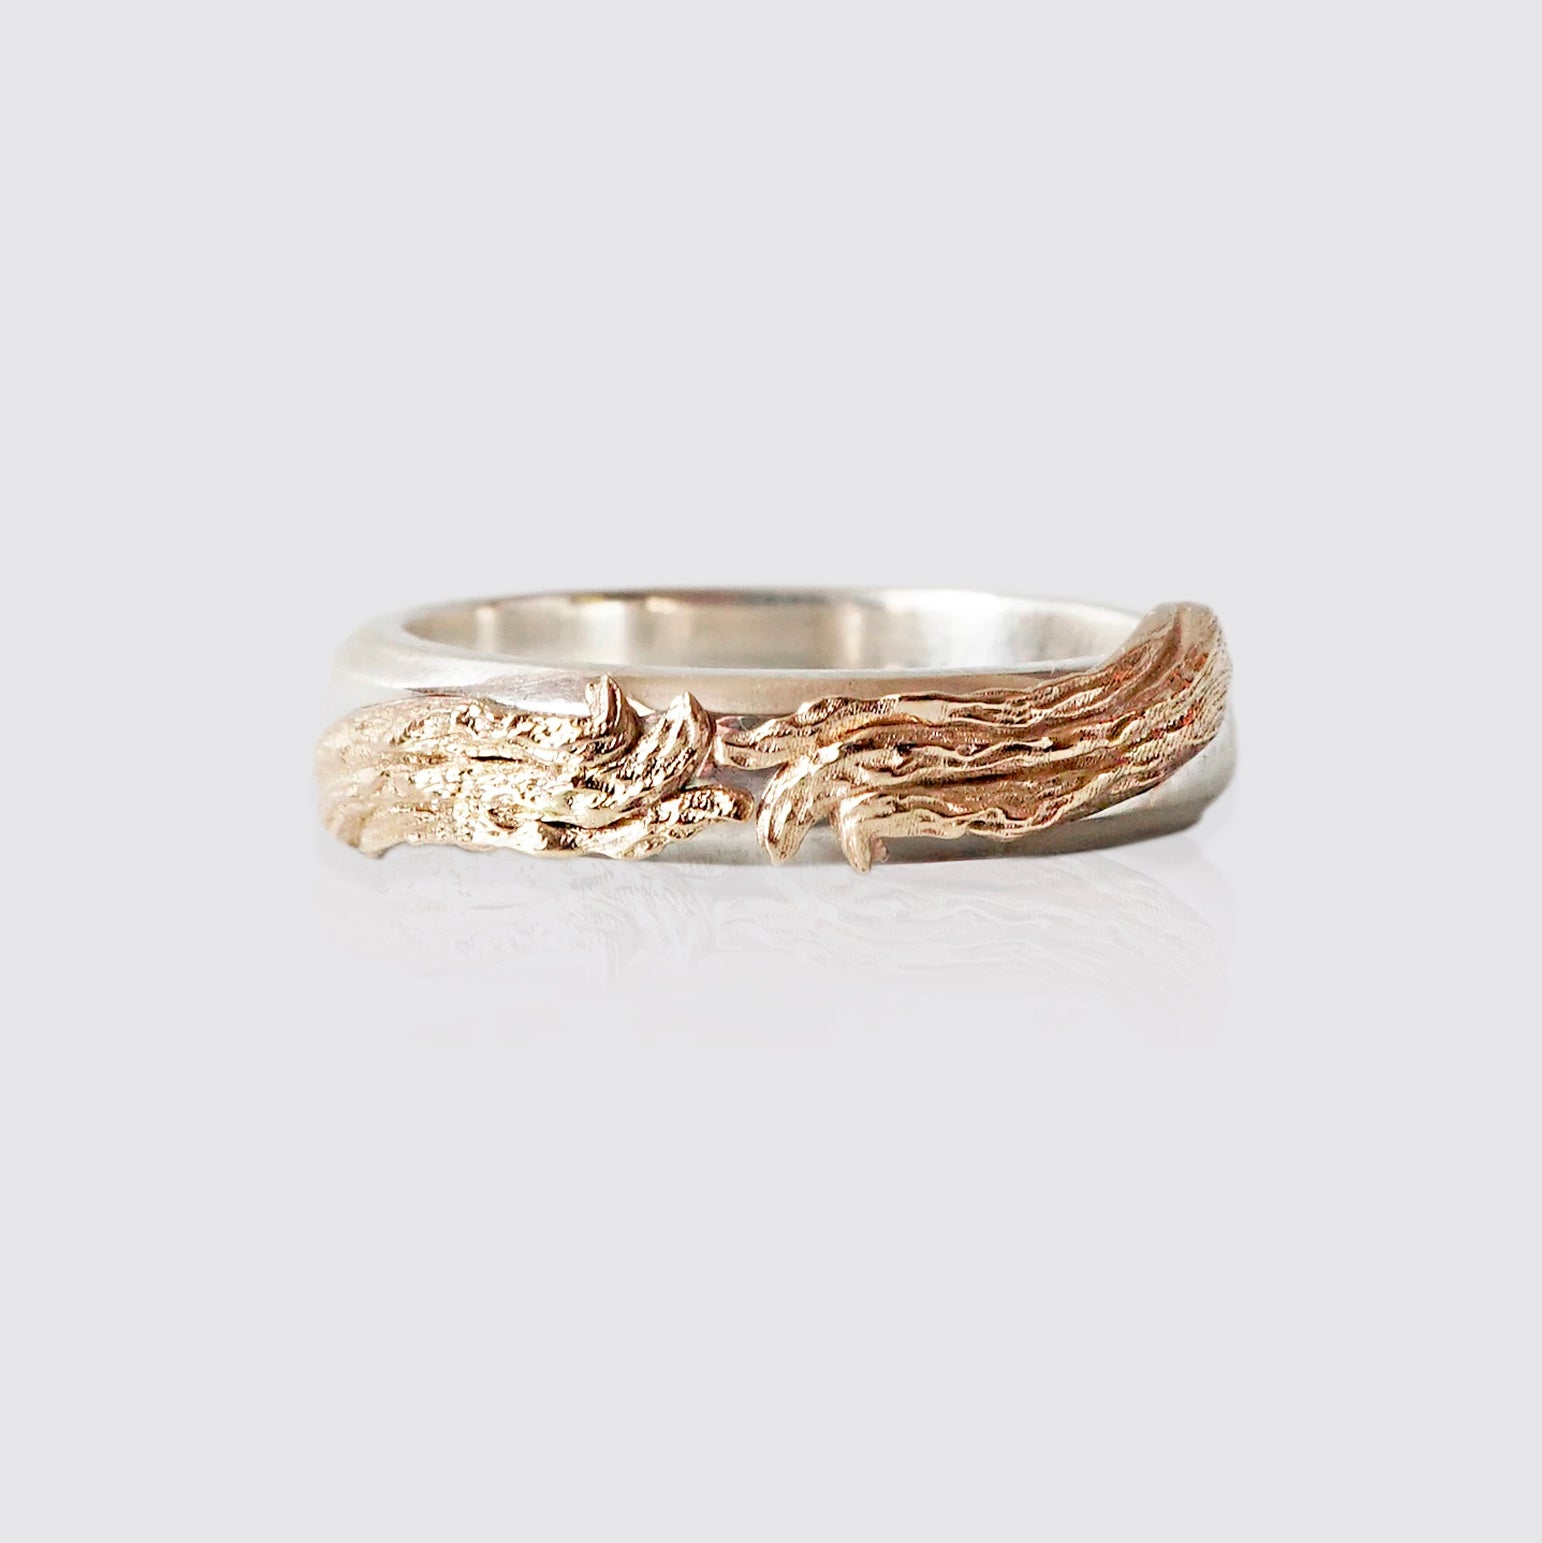 My Cart Close Free Shipping On All Us Domestic Orders Free International Shipping On Orders Over 150 Tippy Taste Jewelry Account Usd Eur Aud Cad Nzd My Cart 0 Limited Edition Ready To Ship Gift Ring Sets Fine Jewelry Fine Delicates Fine